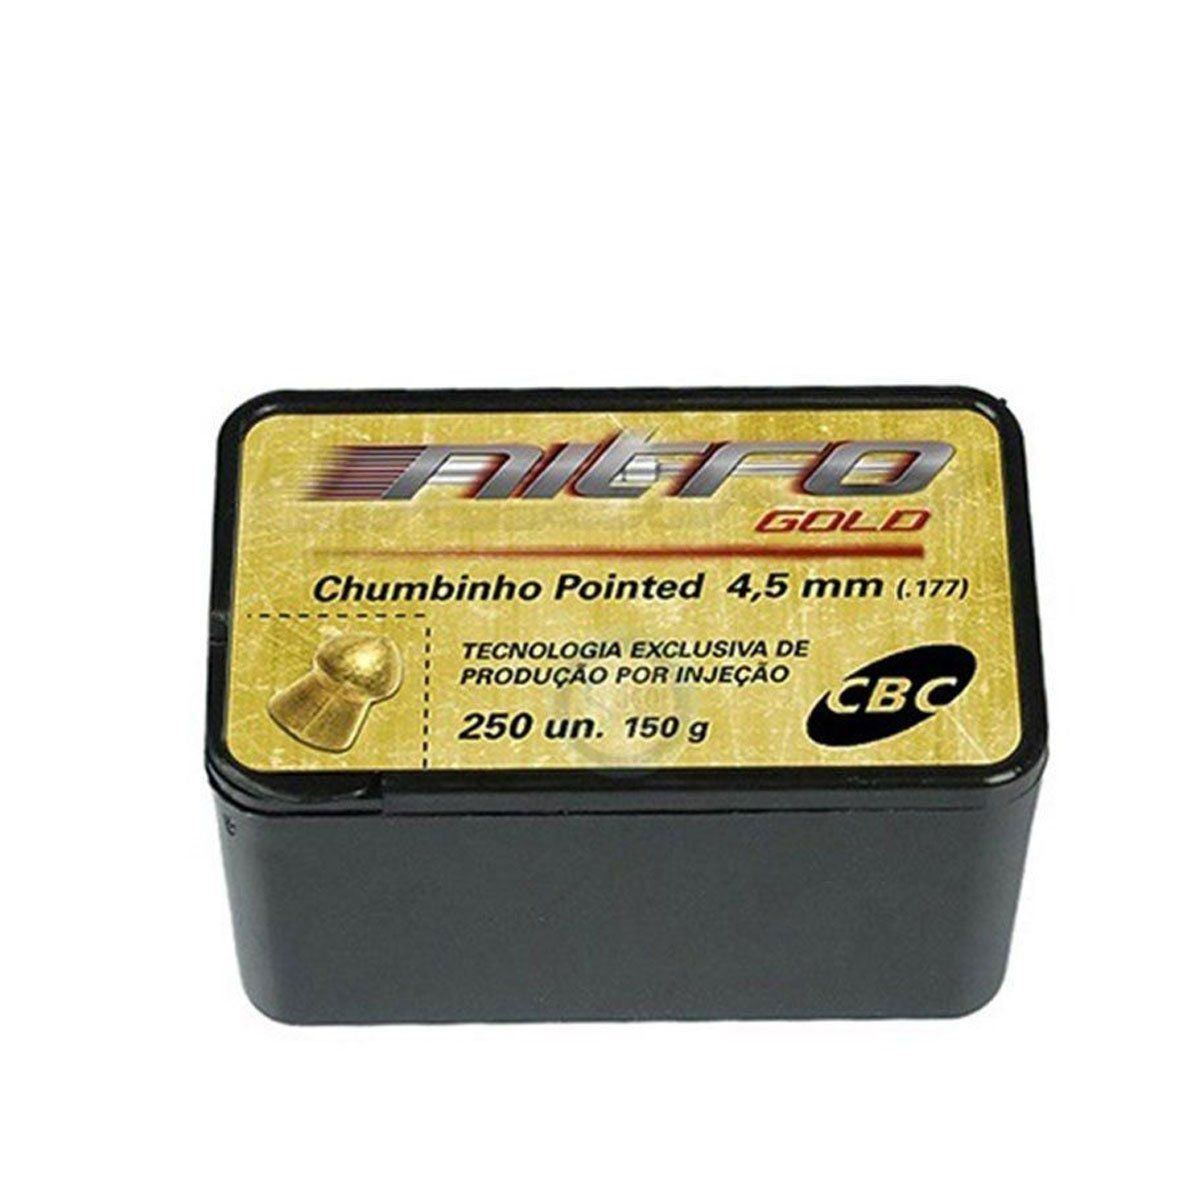 Chumbinho CBC Pointed Nitro Gold 4,5mm 250 unidades